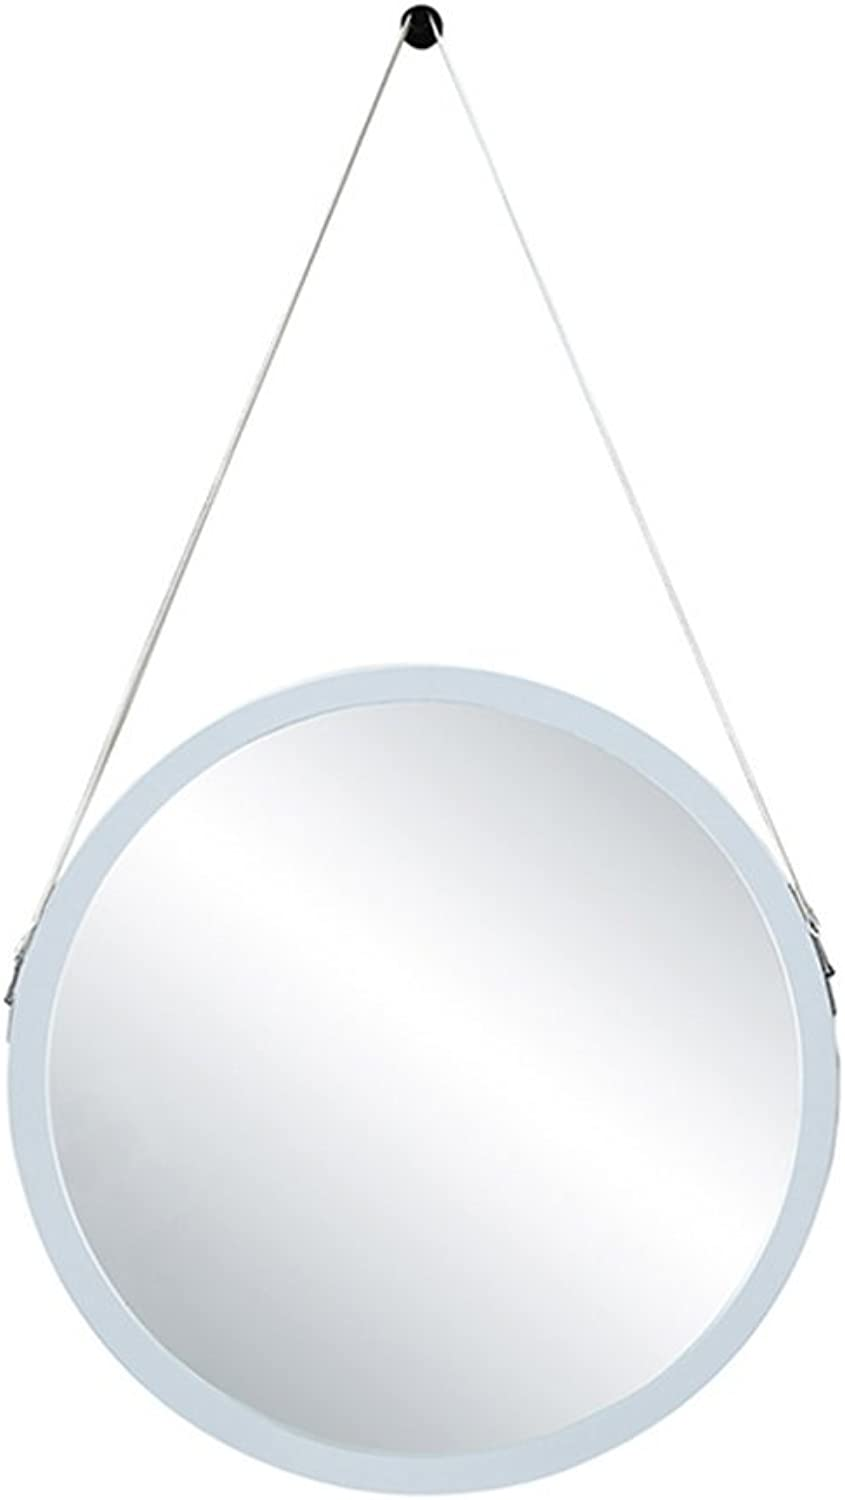 Bathroom Mirror Simple Wall-Mounted Wooden Frame Mirror Lanyard Wall Mirror Round Dressing Table Mirror (color   White, Size   30CM)